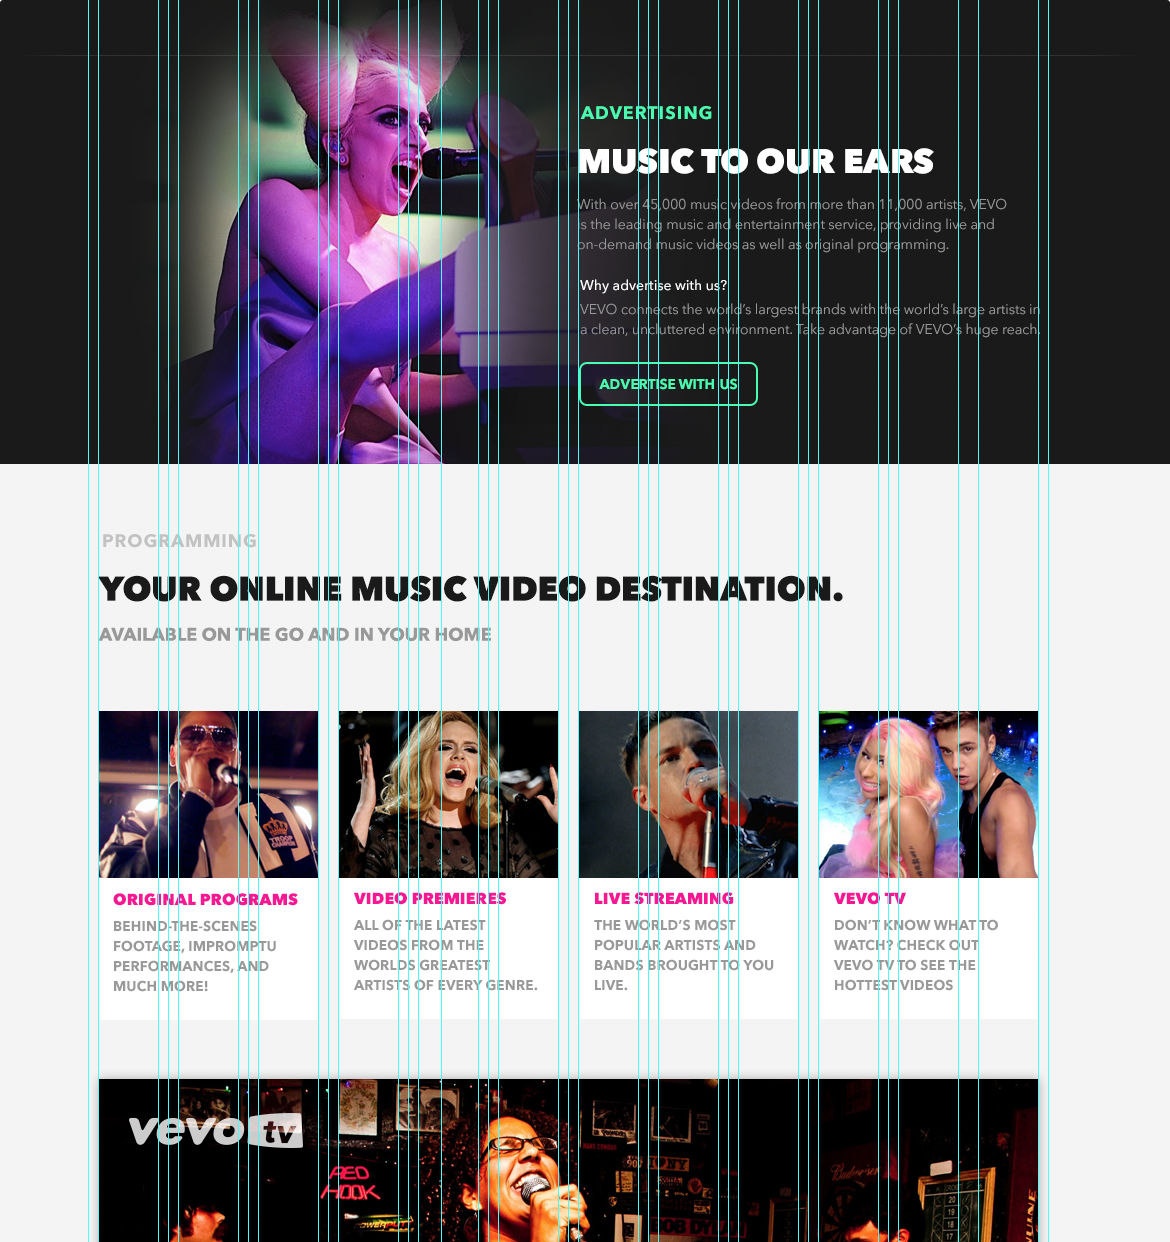 vevo_about_overview_grid